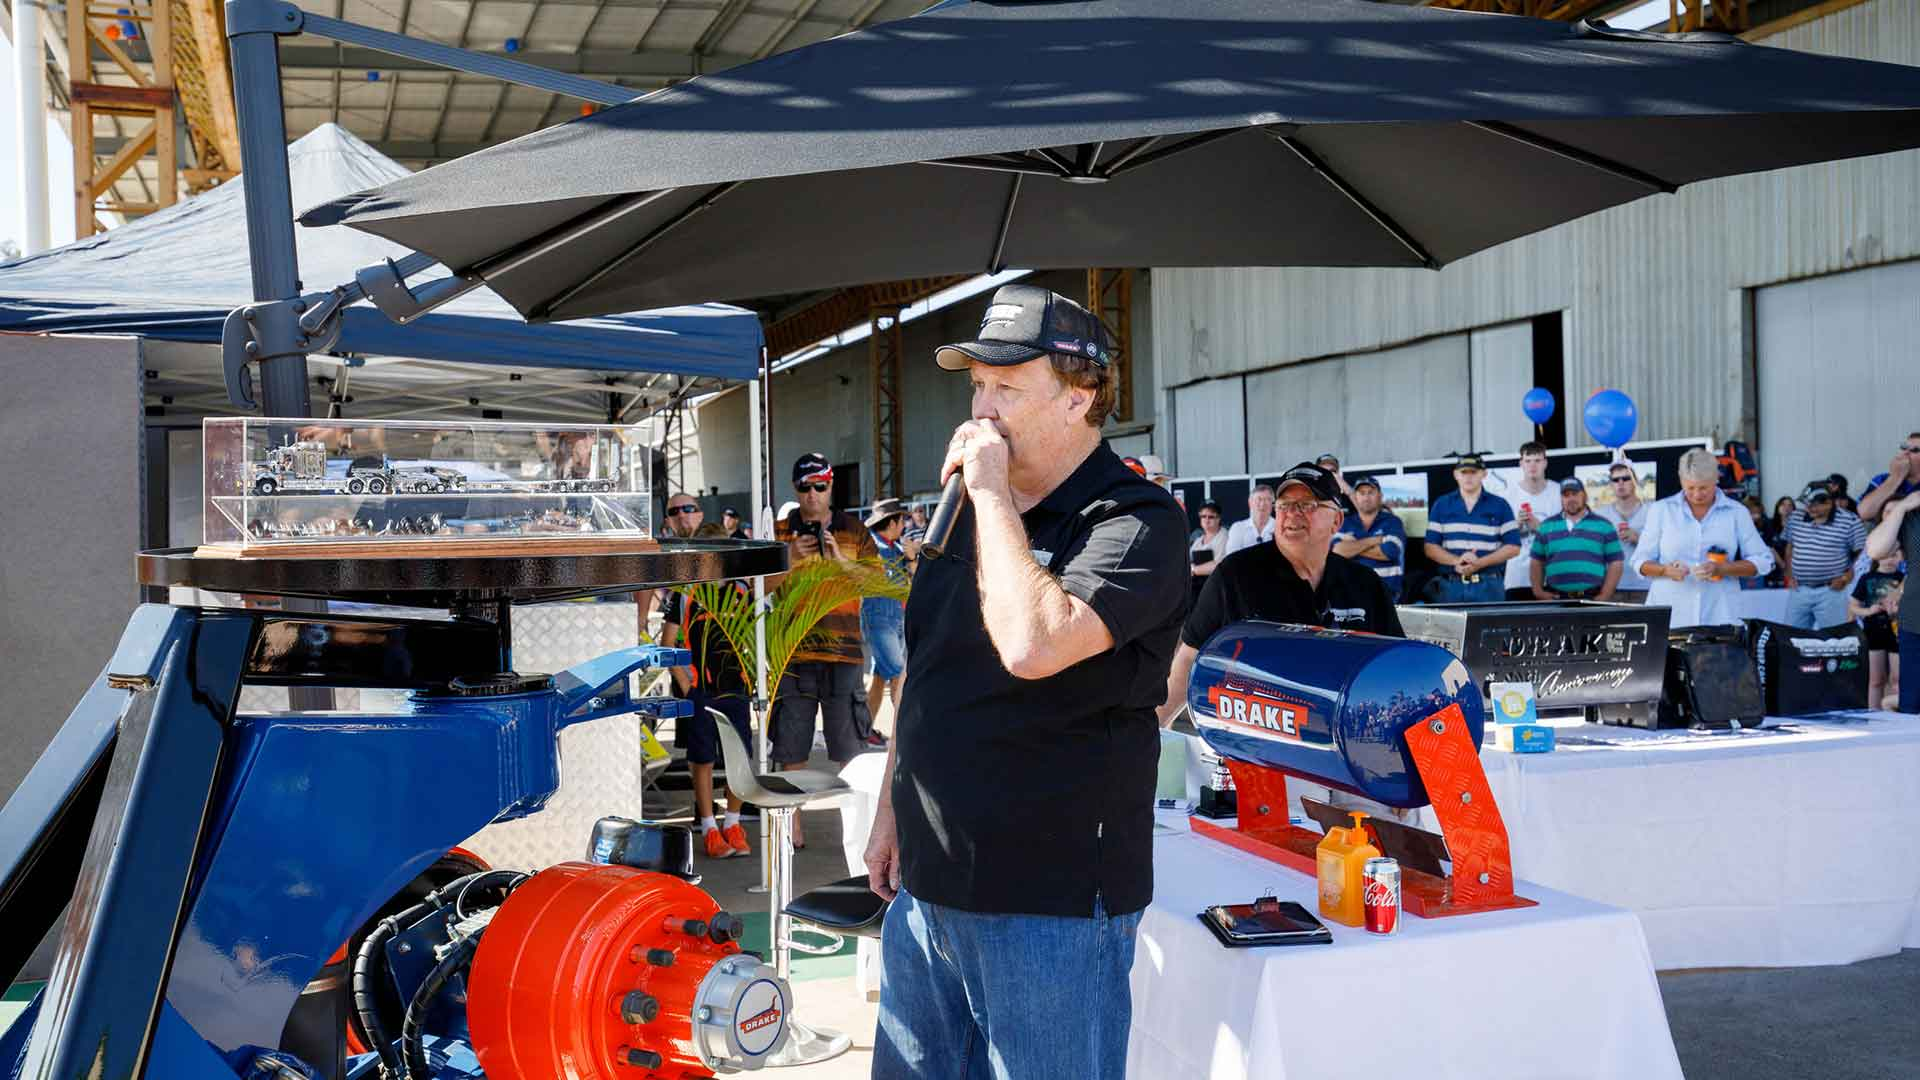 We wrap up the 2018 Drake Group Open Day